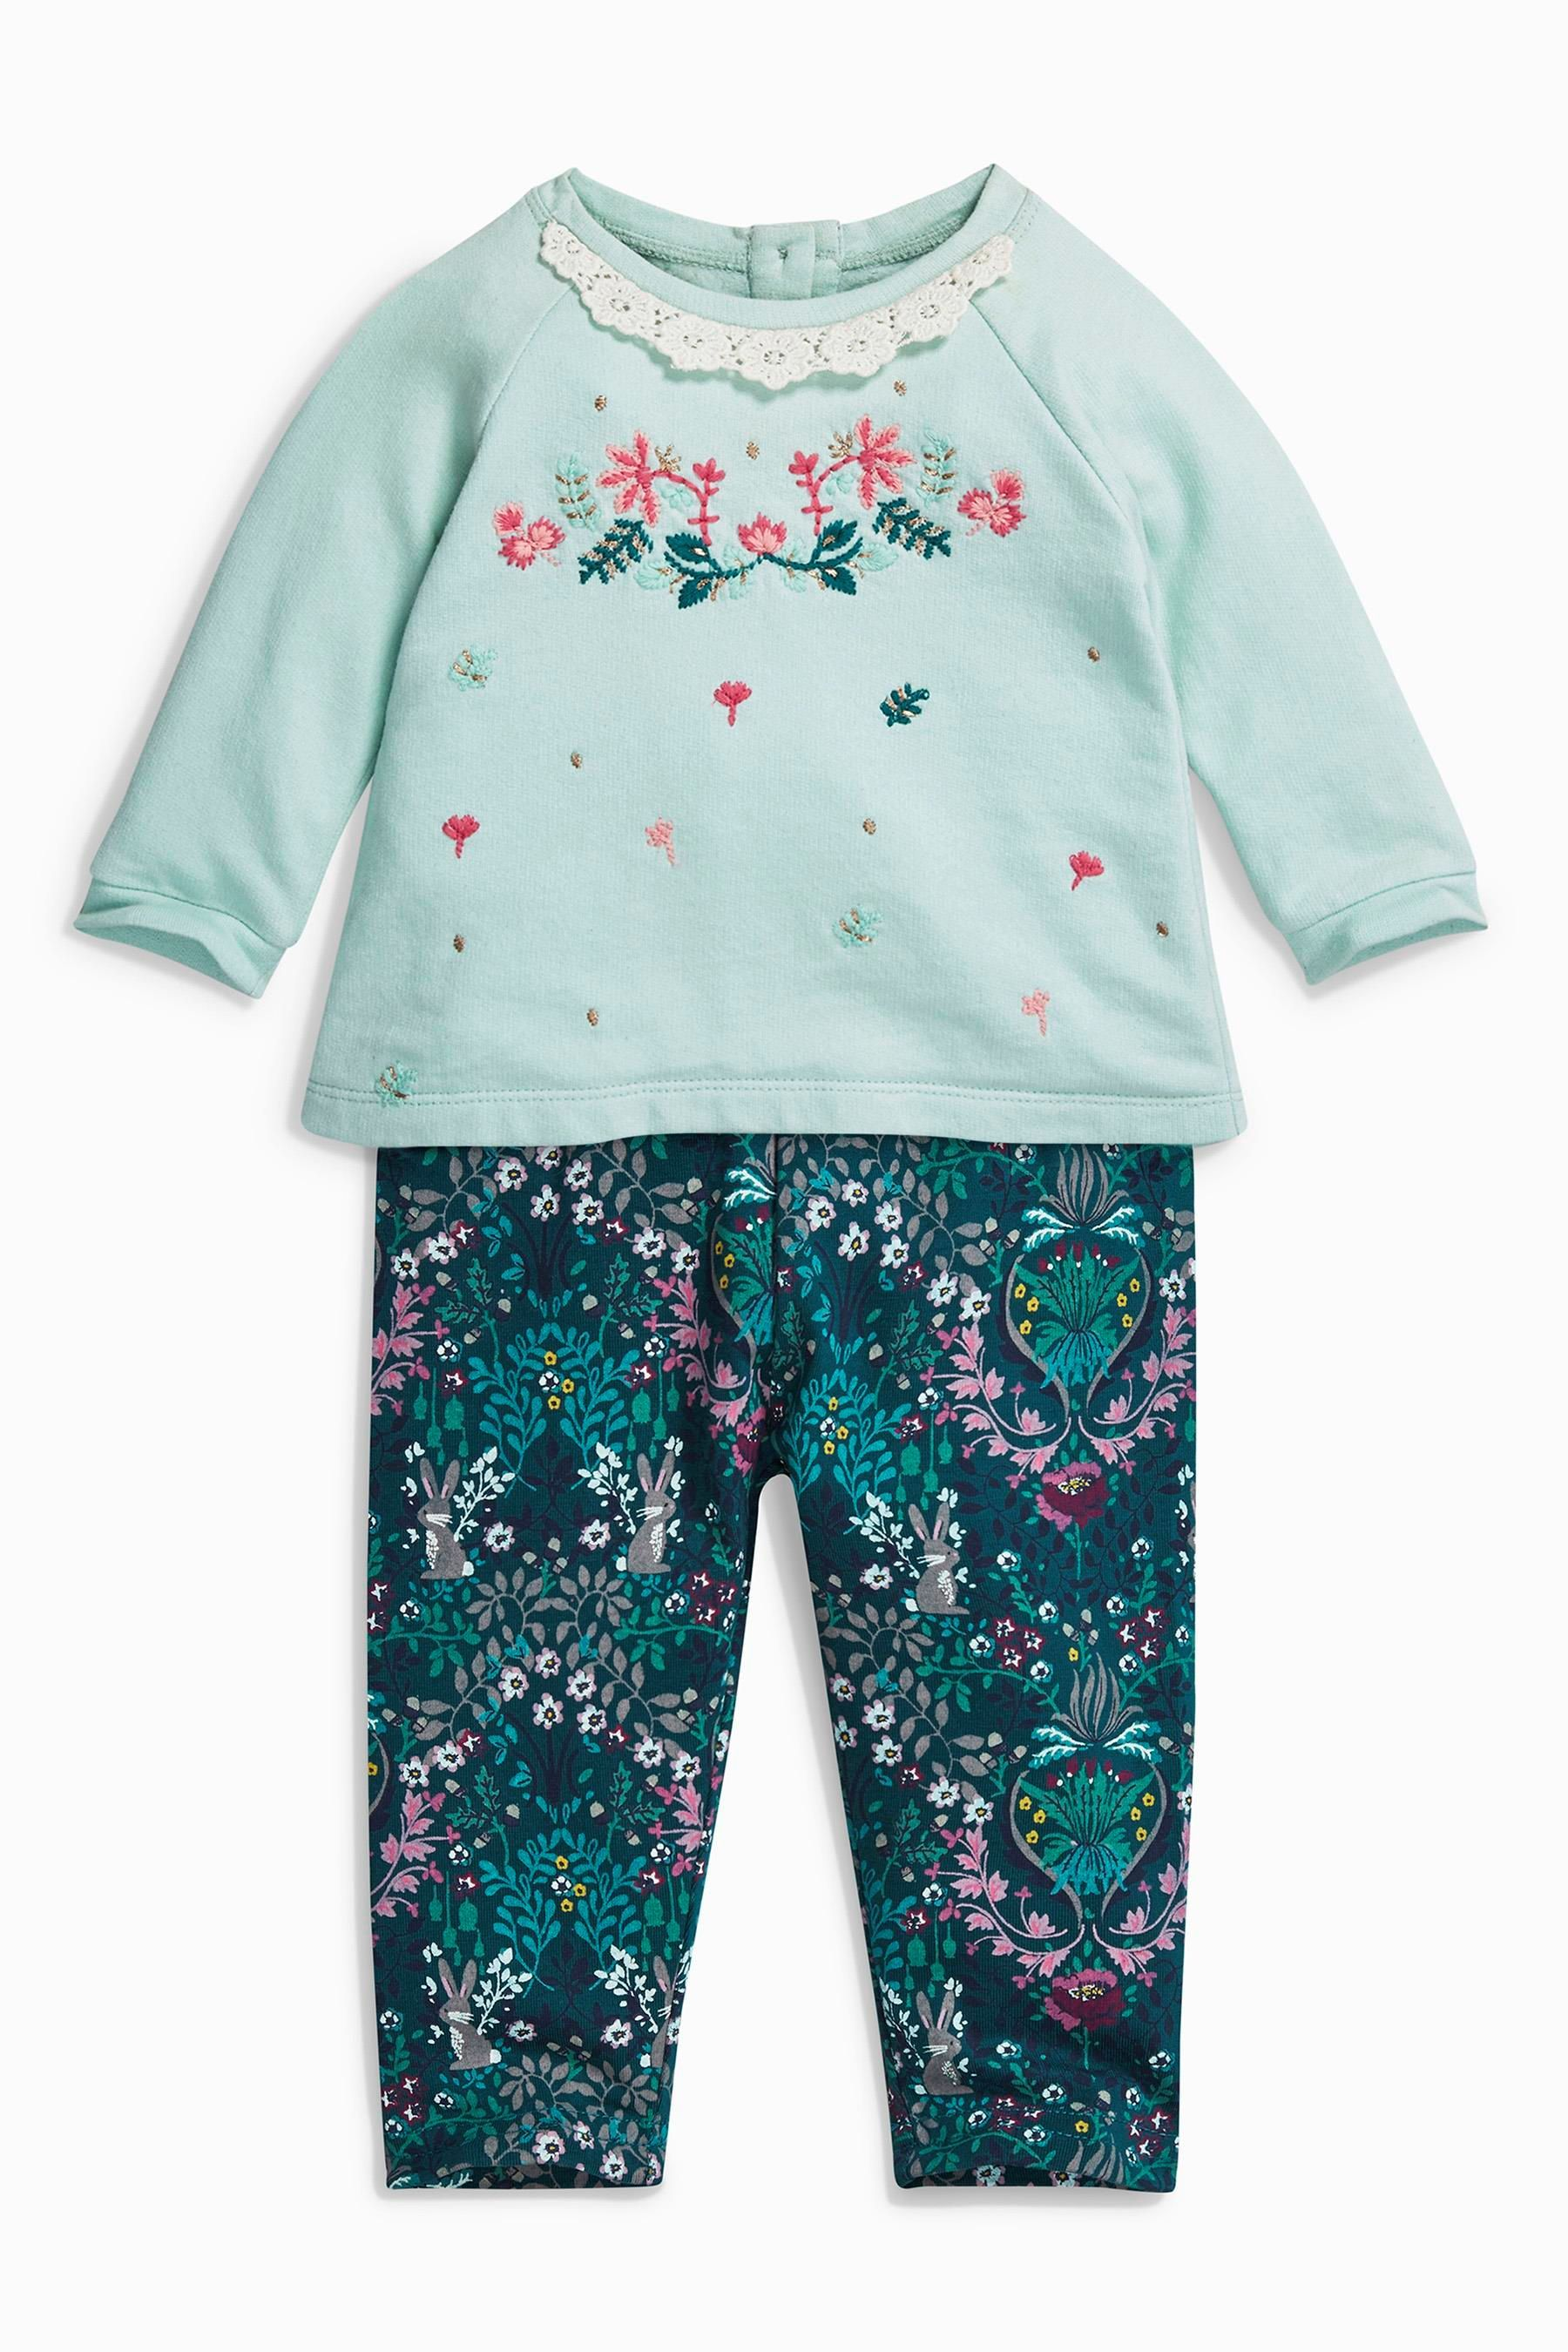 Buy Mint Floral Tunic And Leggings Set 0mths 2yrs from the Next UK